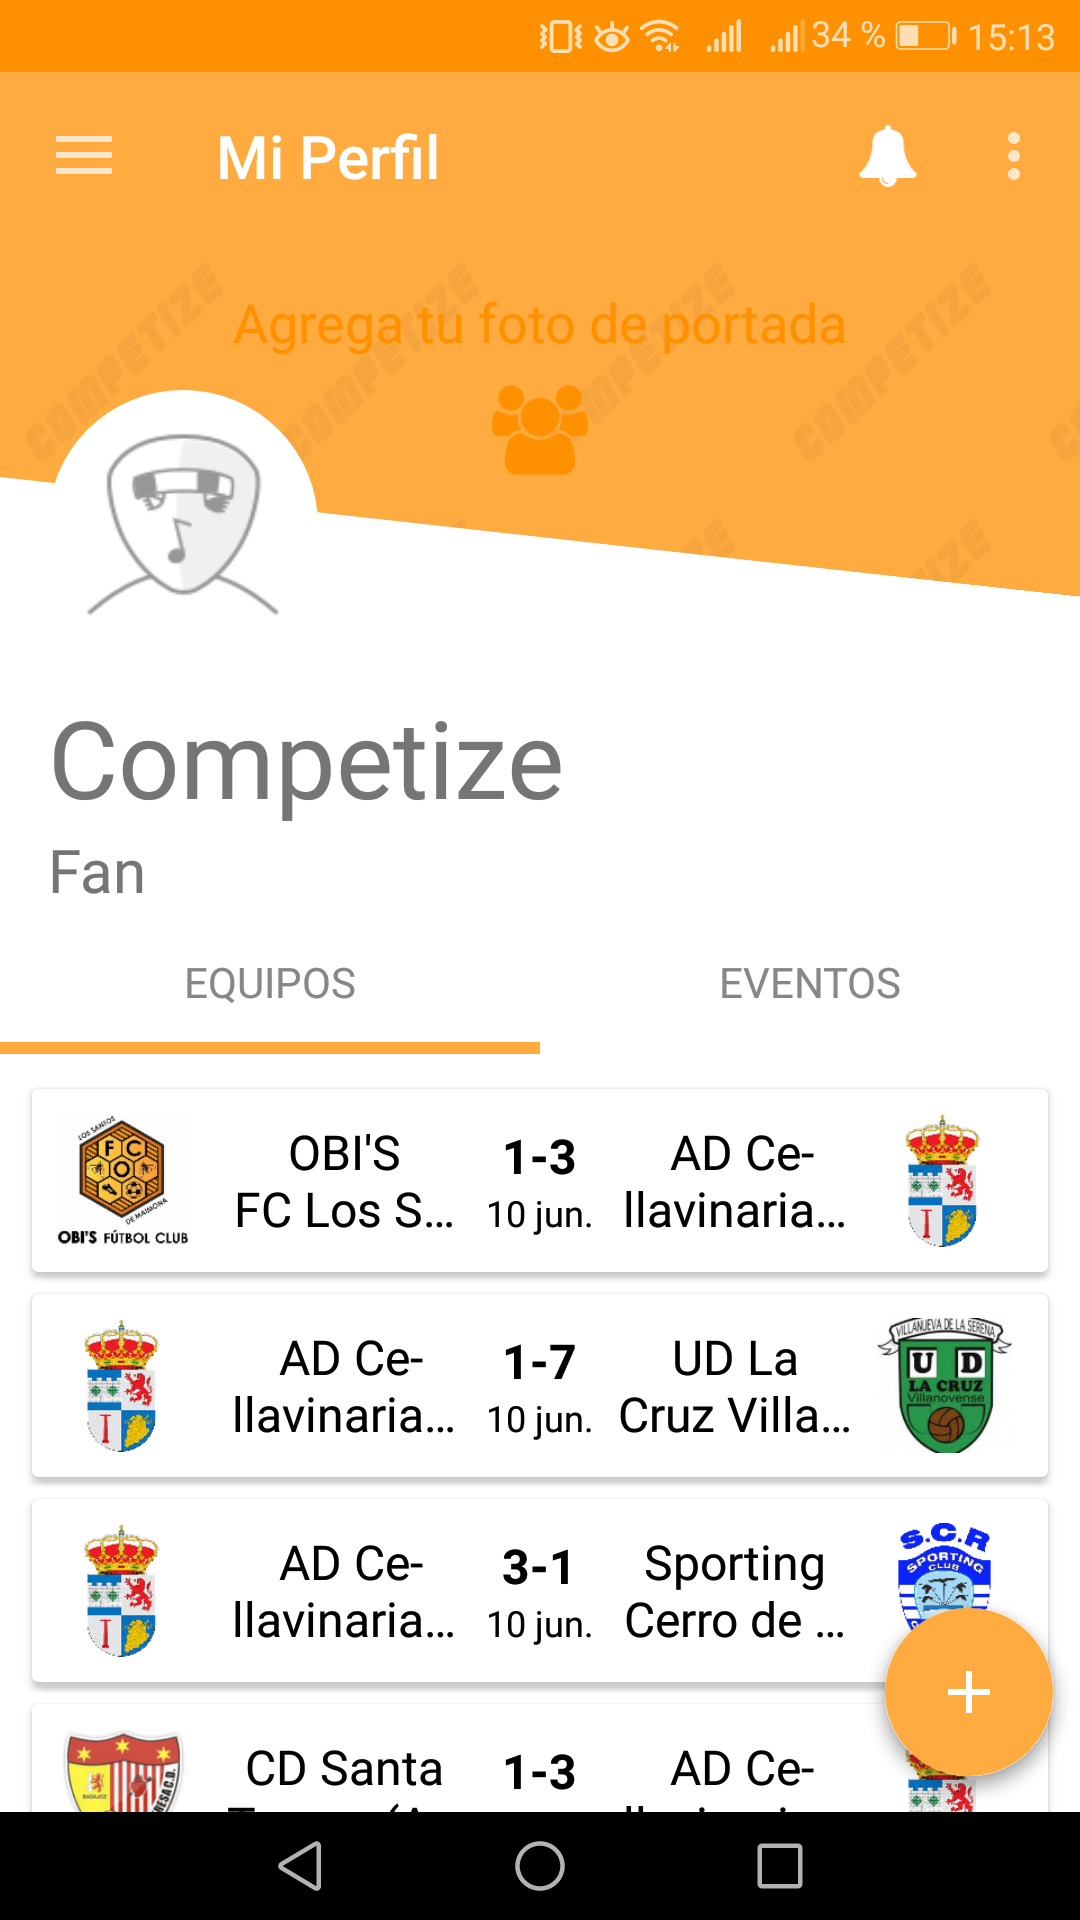 Follow tournaments from an app for fans